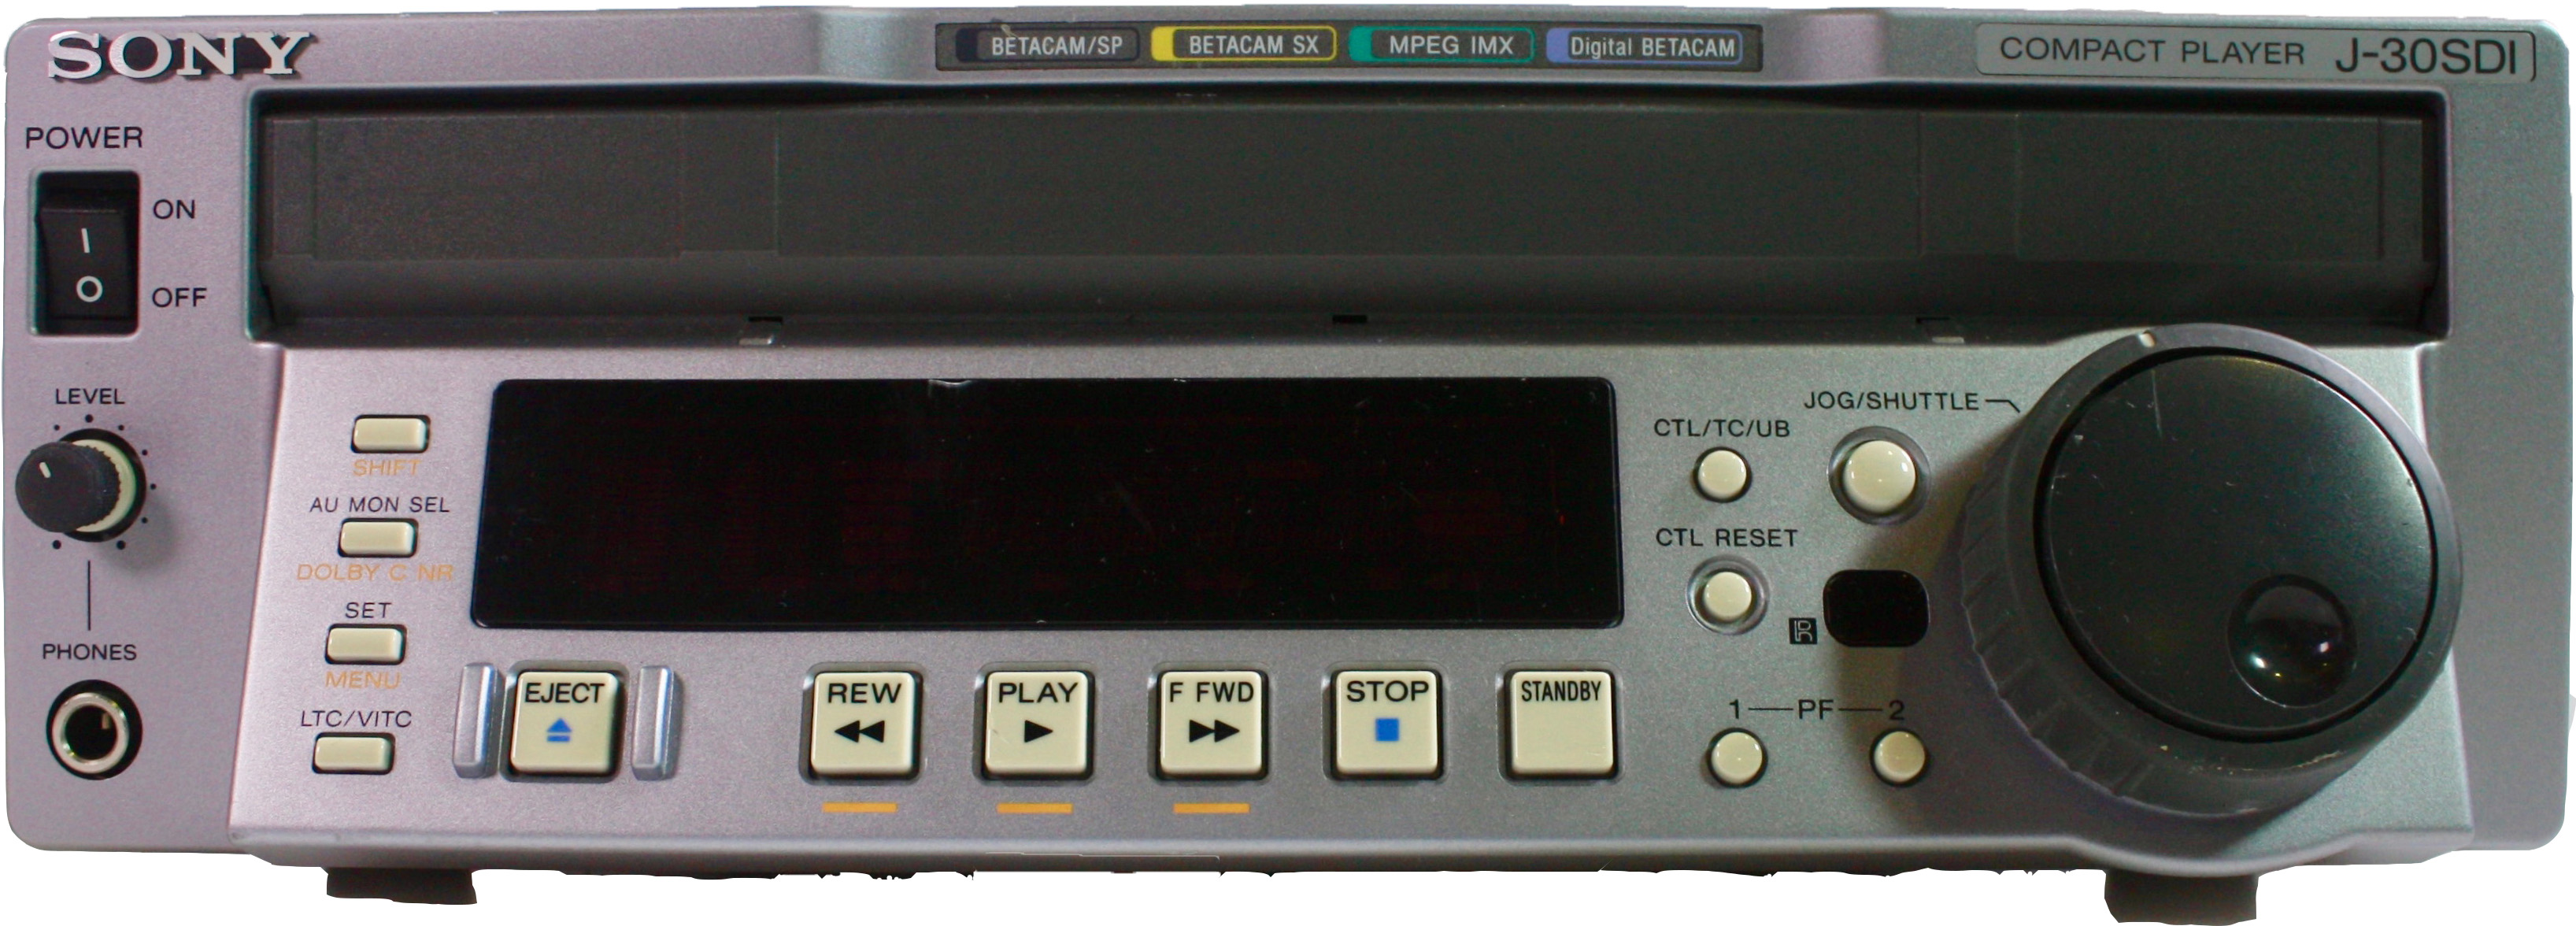 Sony J-30/SDI Compact Player - Image #1